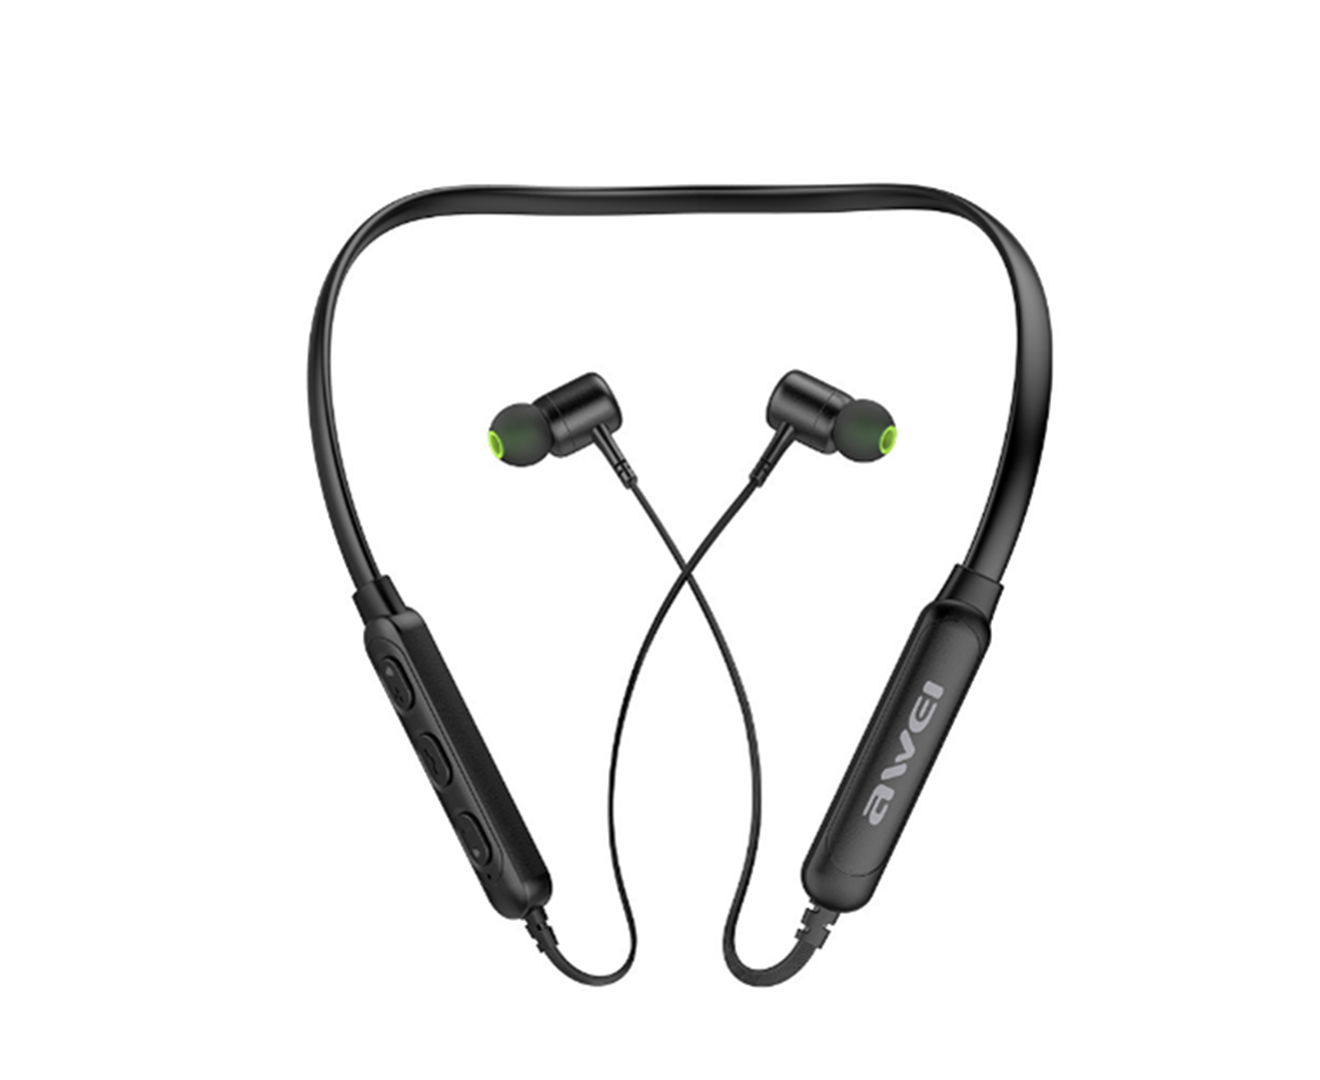 G30BL Hanging Neck Magnetic Sports Bluetooth Headset 4.2 Wireless Mobile Phone Headset In-ear Earplugs